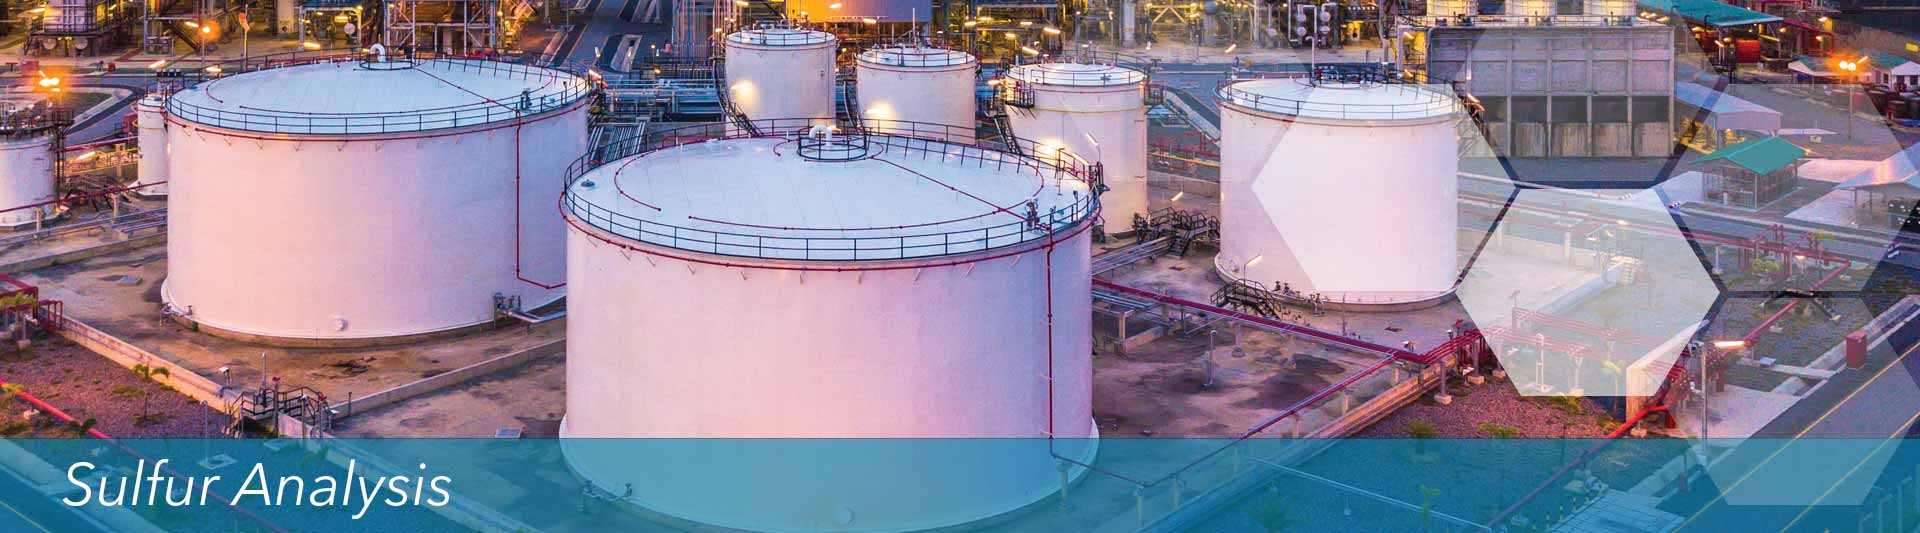 OI Analytical | Petroleum Solutions - Sulfur Analysis